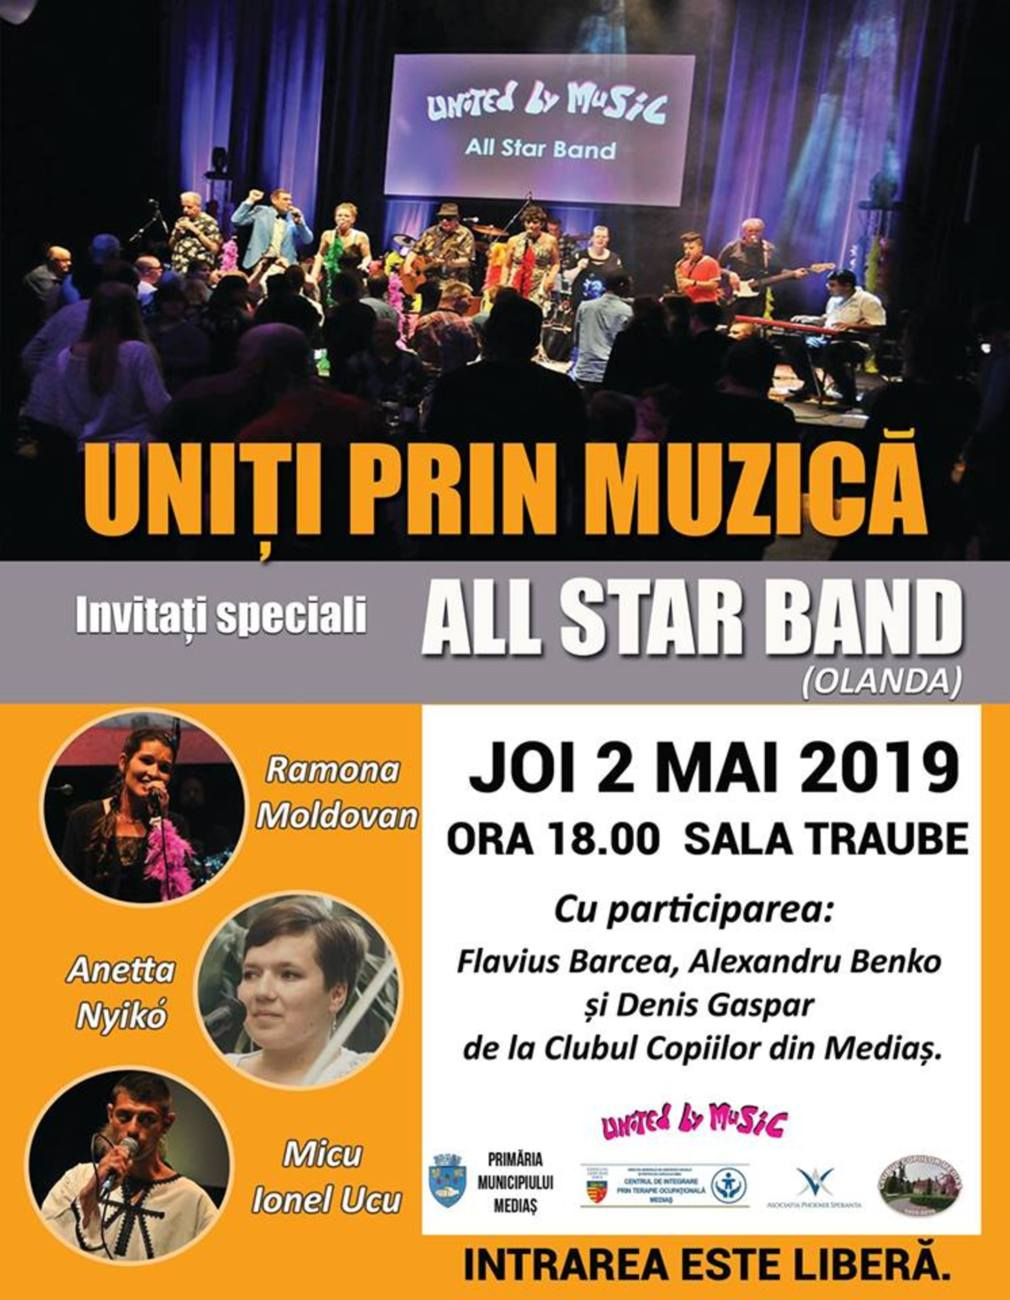 All Star Band concertează în 2 mai la Mediaș